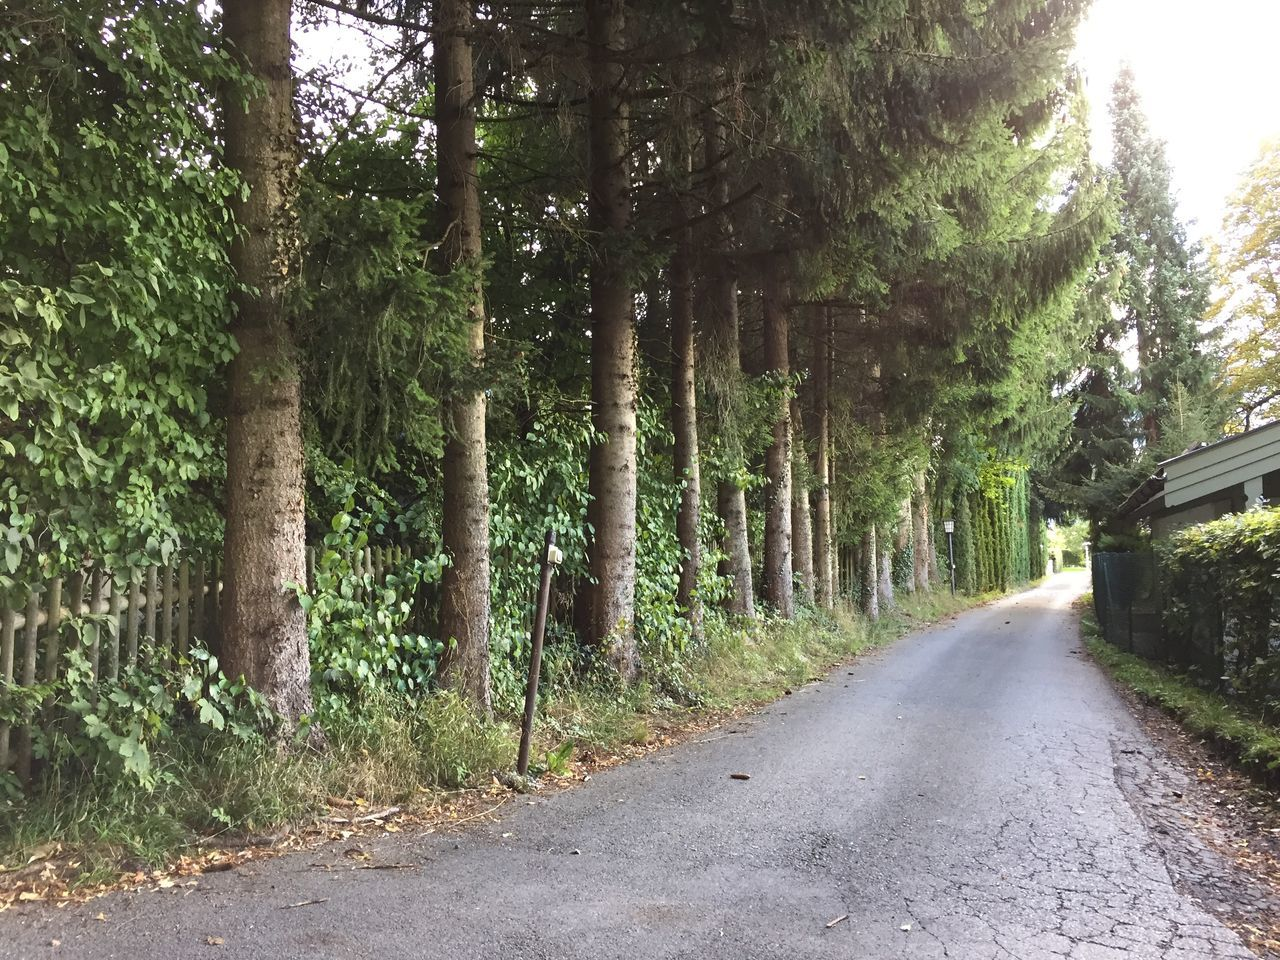 tree, the way forward, road, nature, day, outdoors, no people, tree trunk, tranquility, transportation, scenics, growth, forest, beauty in nature